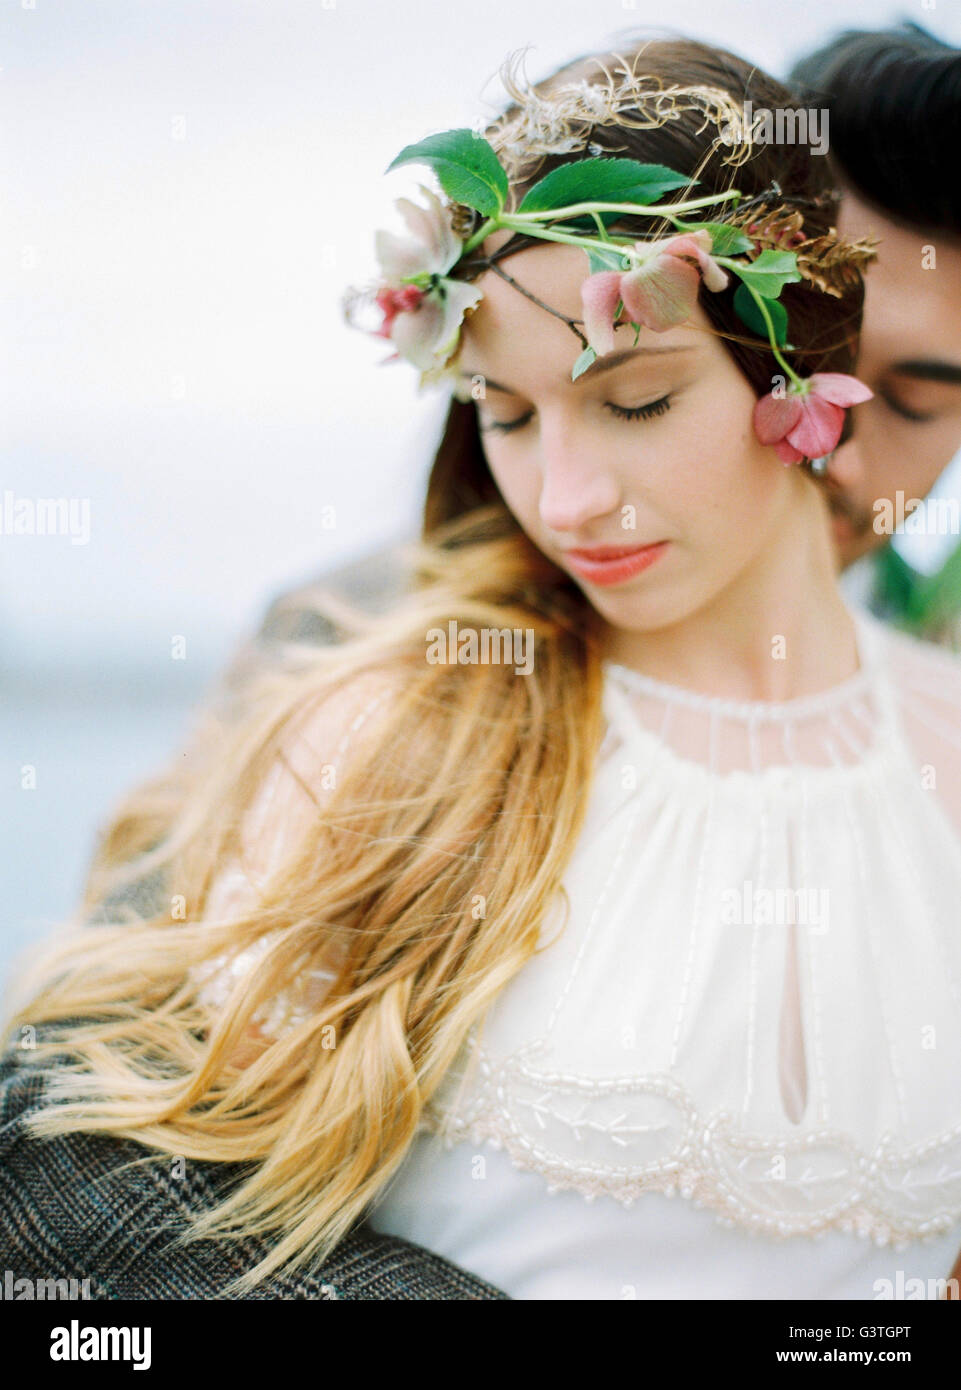 Sweden, Halland, Varberg, Bride and groom hugging - Stock Image